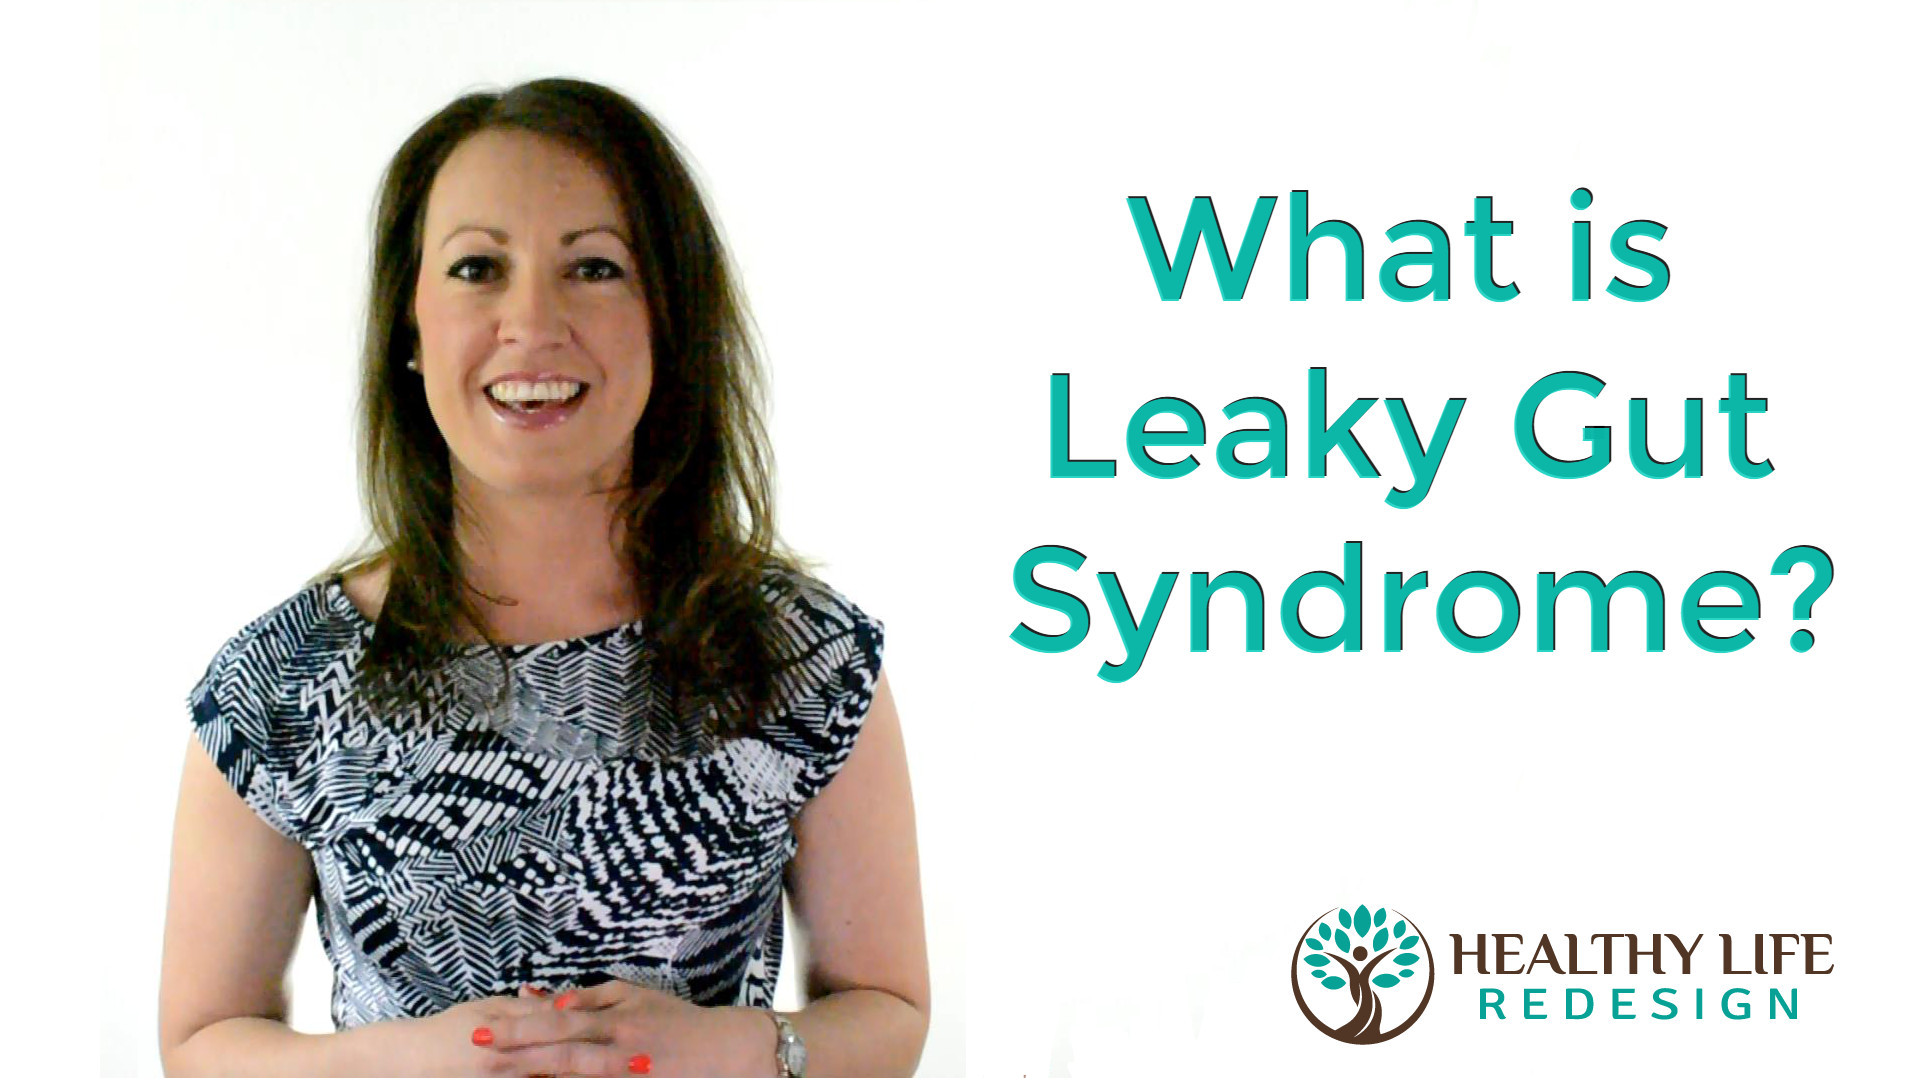 What is leaky gut syndrome?